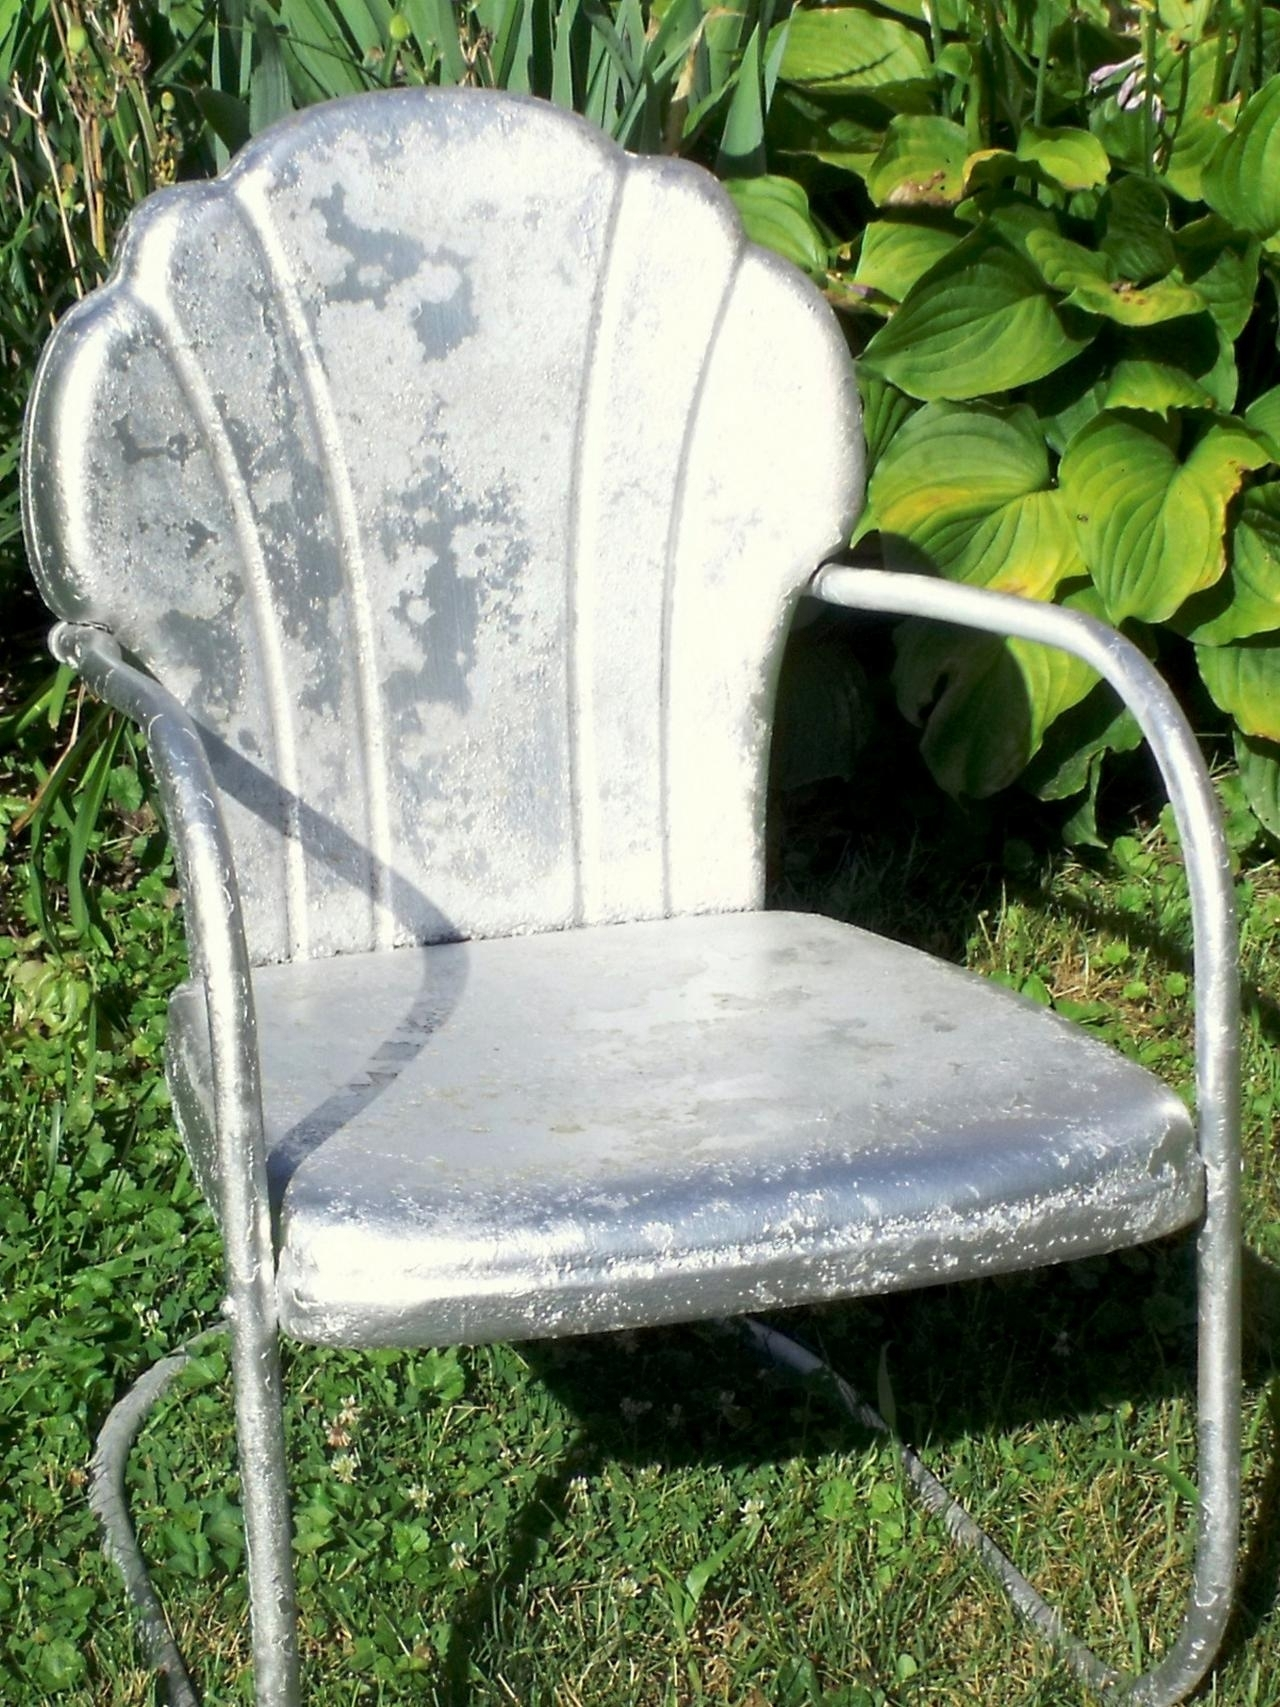 How Tell Metal Furniture And Decor Worth Refinishing Diy Outdoor Intended For Vintage Metal Rocking Patio Chairs (View 10 of 15)